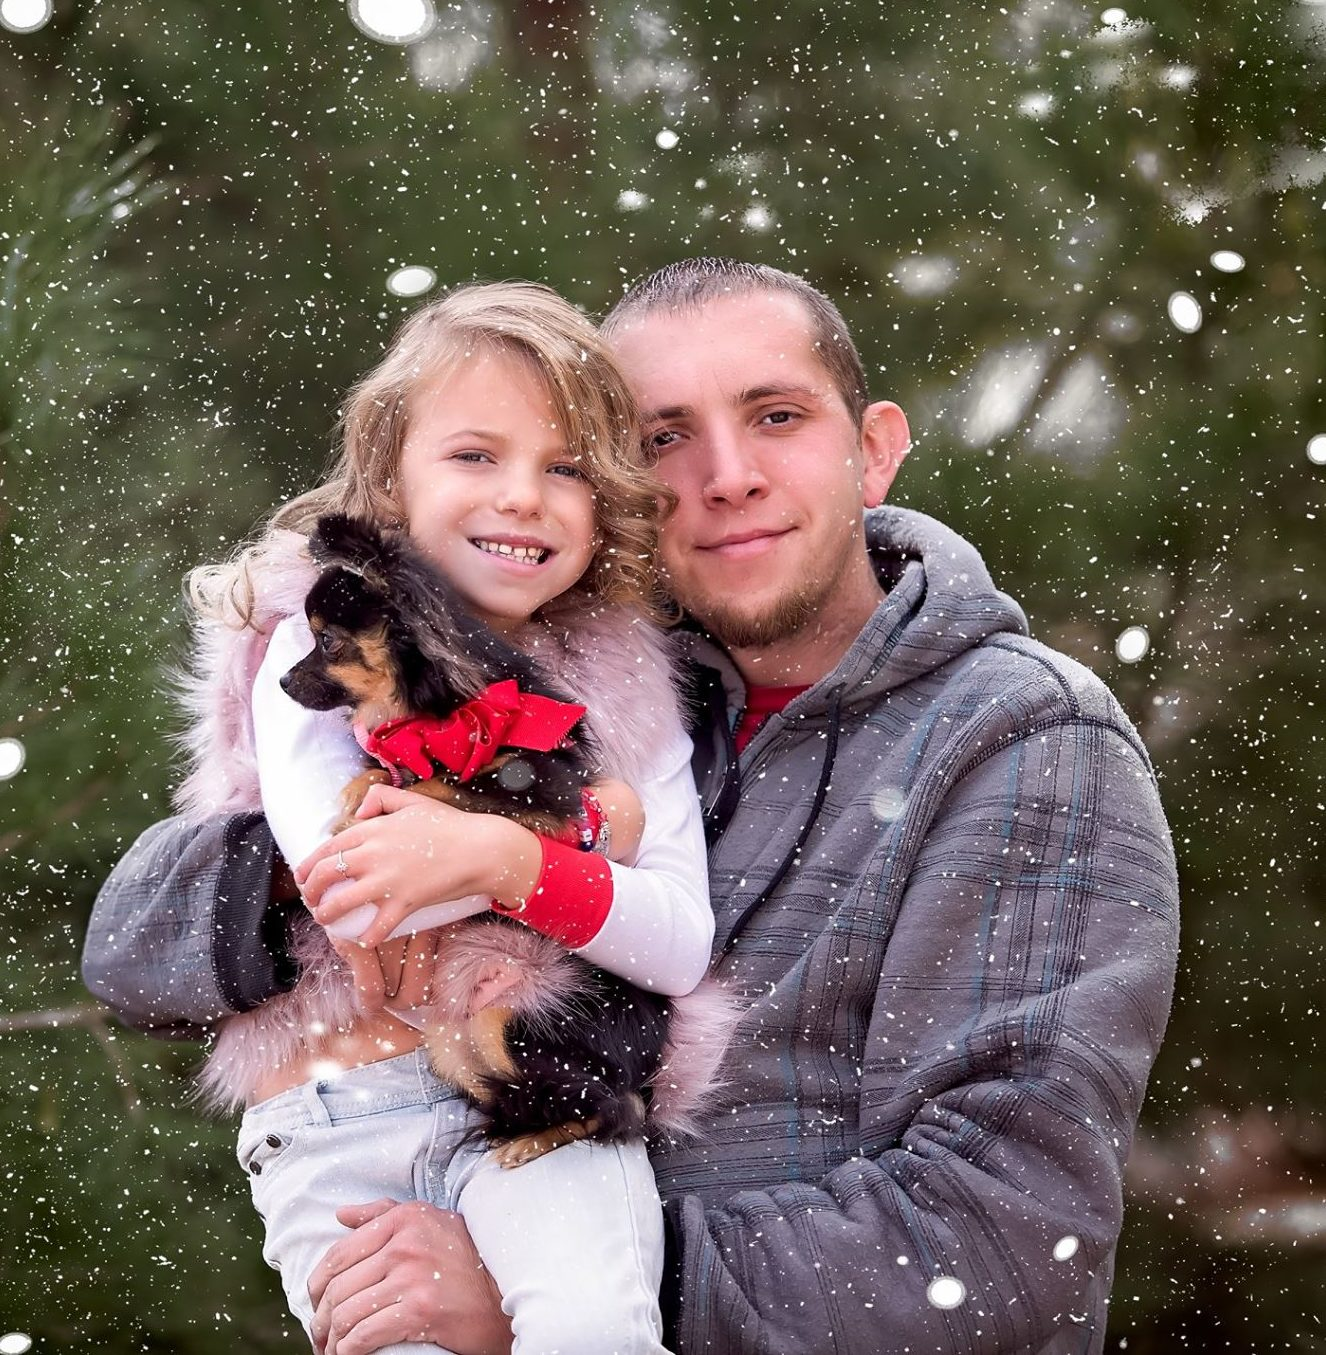 David Heisler with his daughter Mariah, location and date unspecified | Photo courtesy of the Justice for David Heisler Facebook page, St. George News